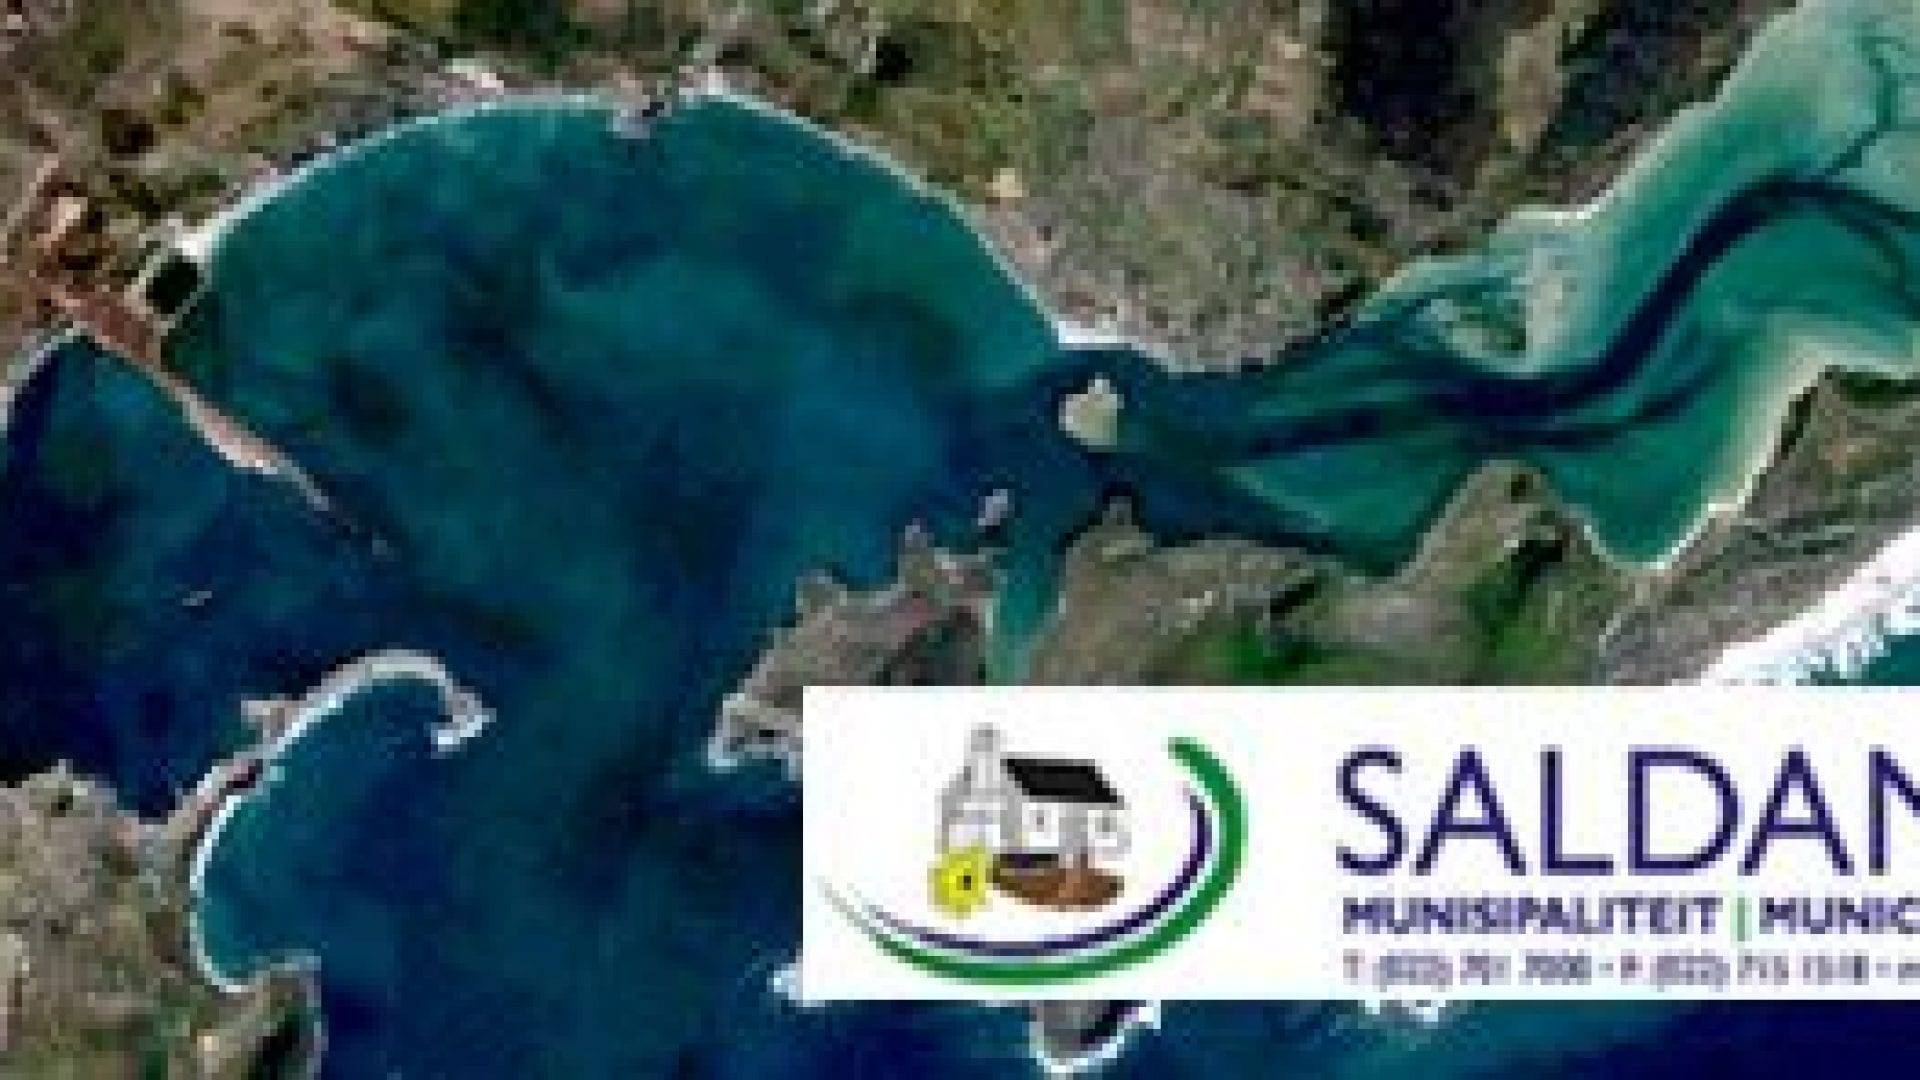 Saldanha Bay Municipality feedback